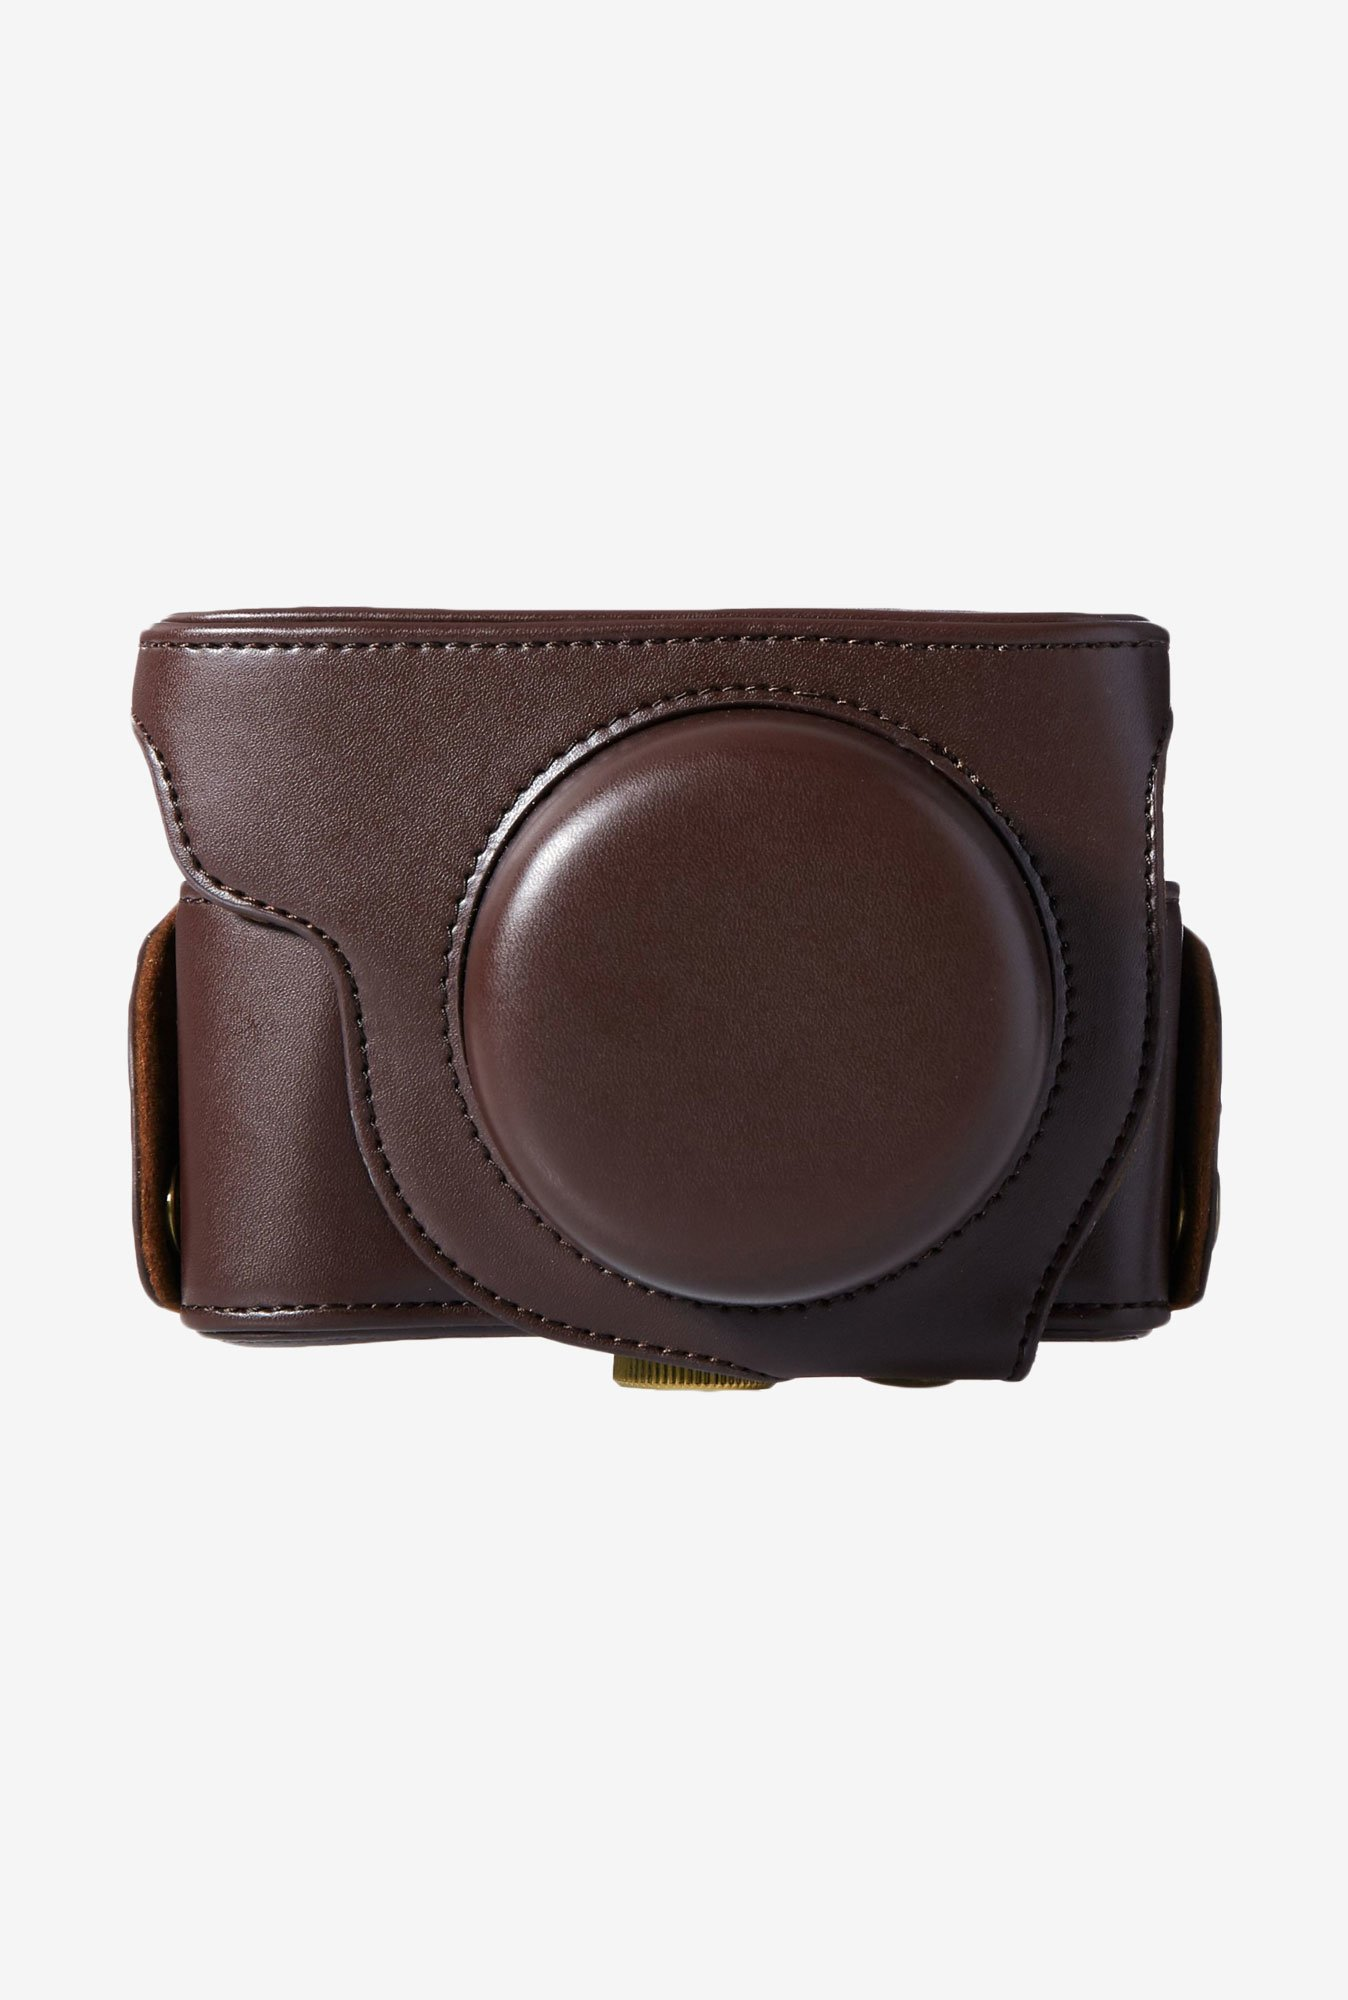 MegaGear Leather Camera Case for Olympus XZ-2 Camera (Brown)